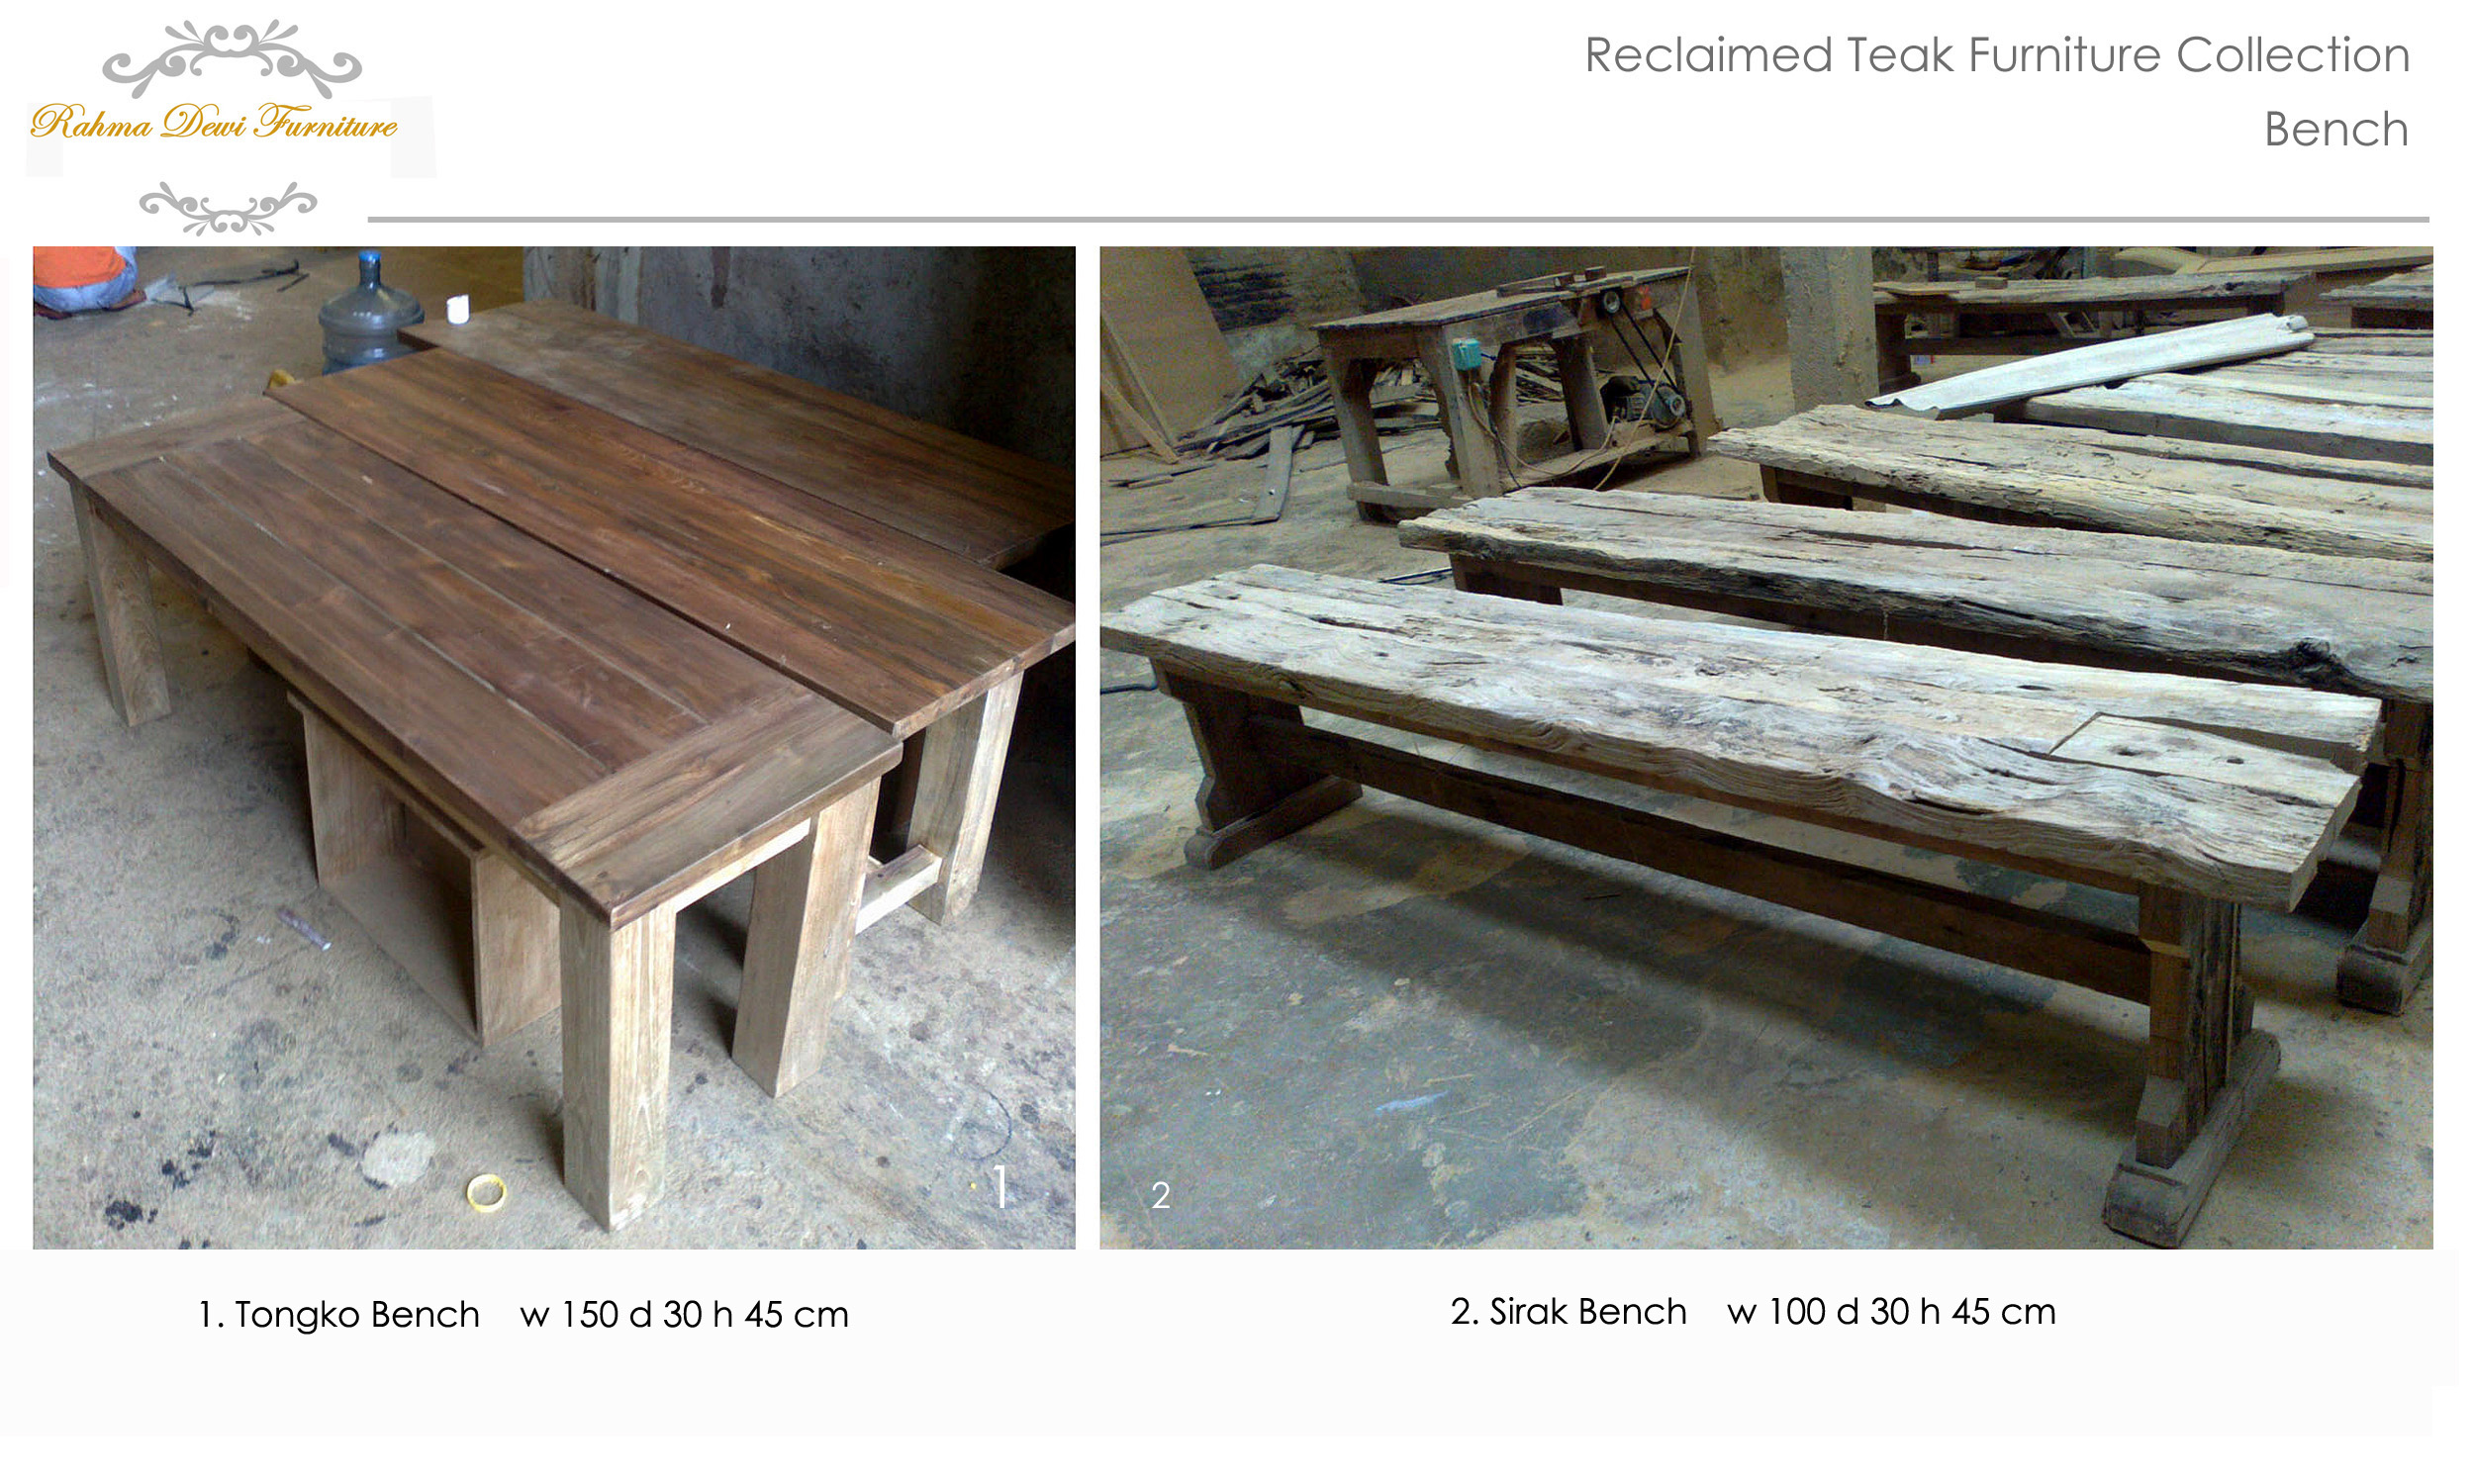 An eco friendly work in making teak wood furniture in java indonesia reclaiming the teak wood from the wreck of old wooden house recycling into a